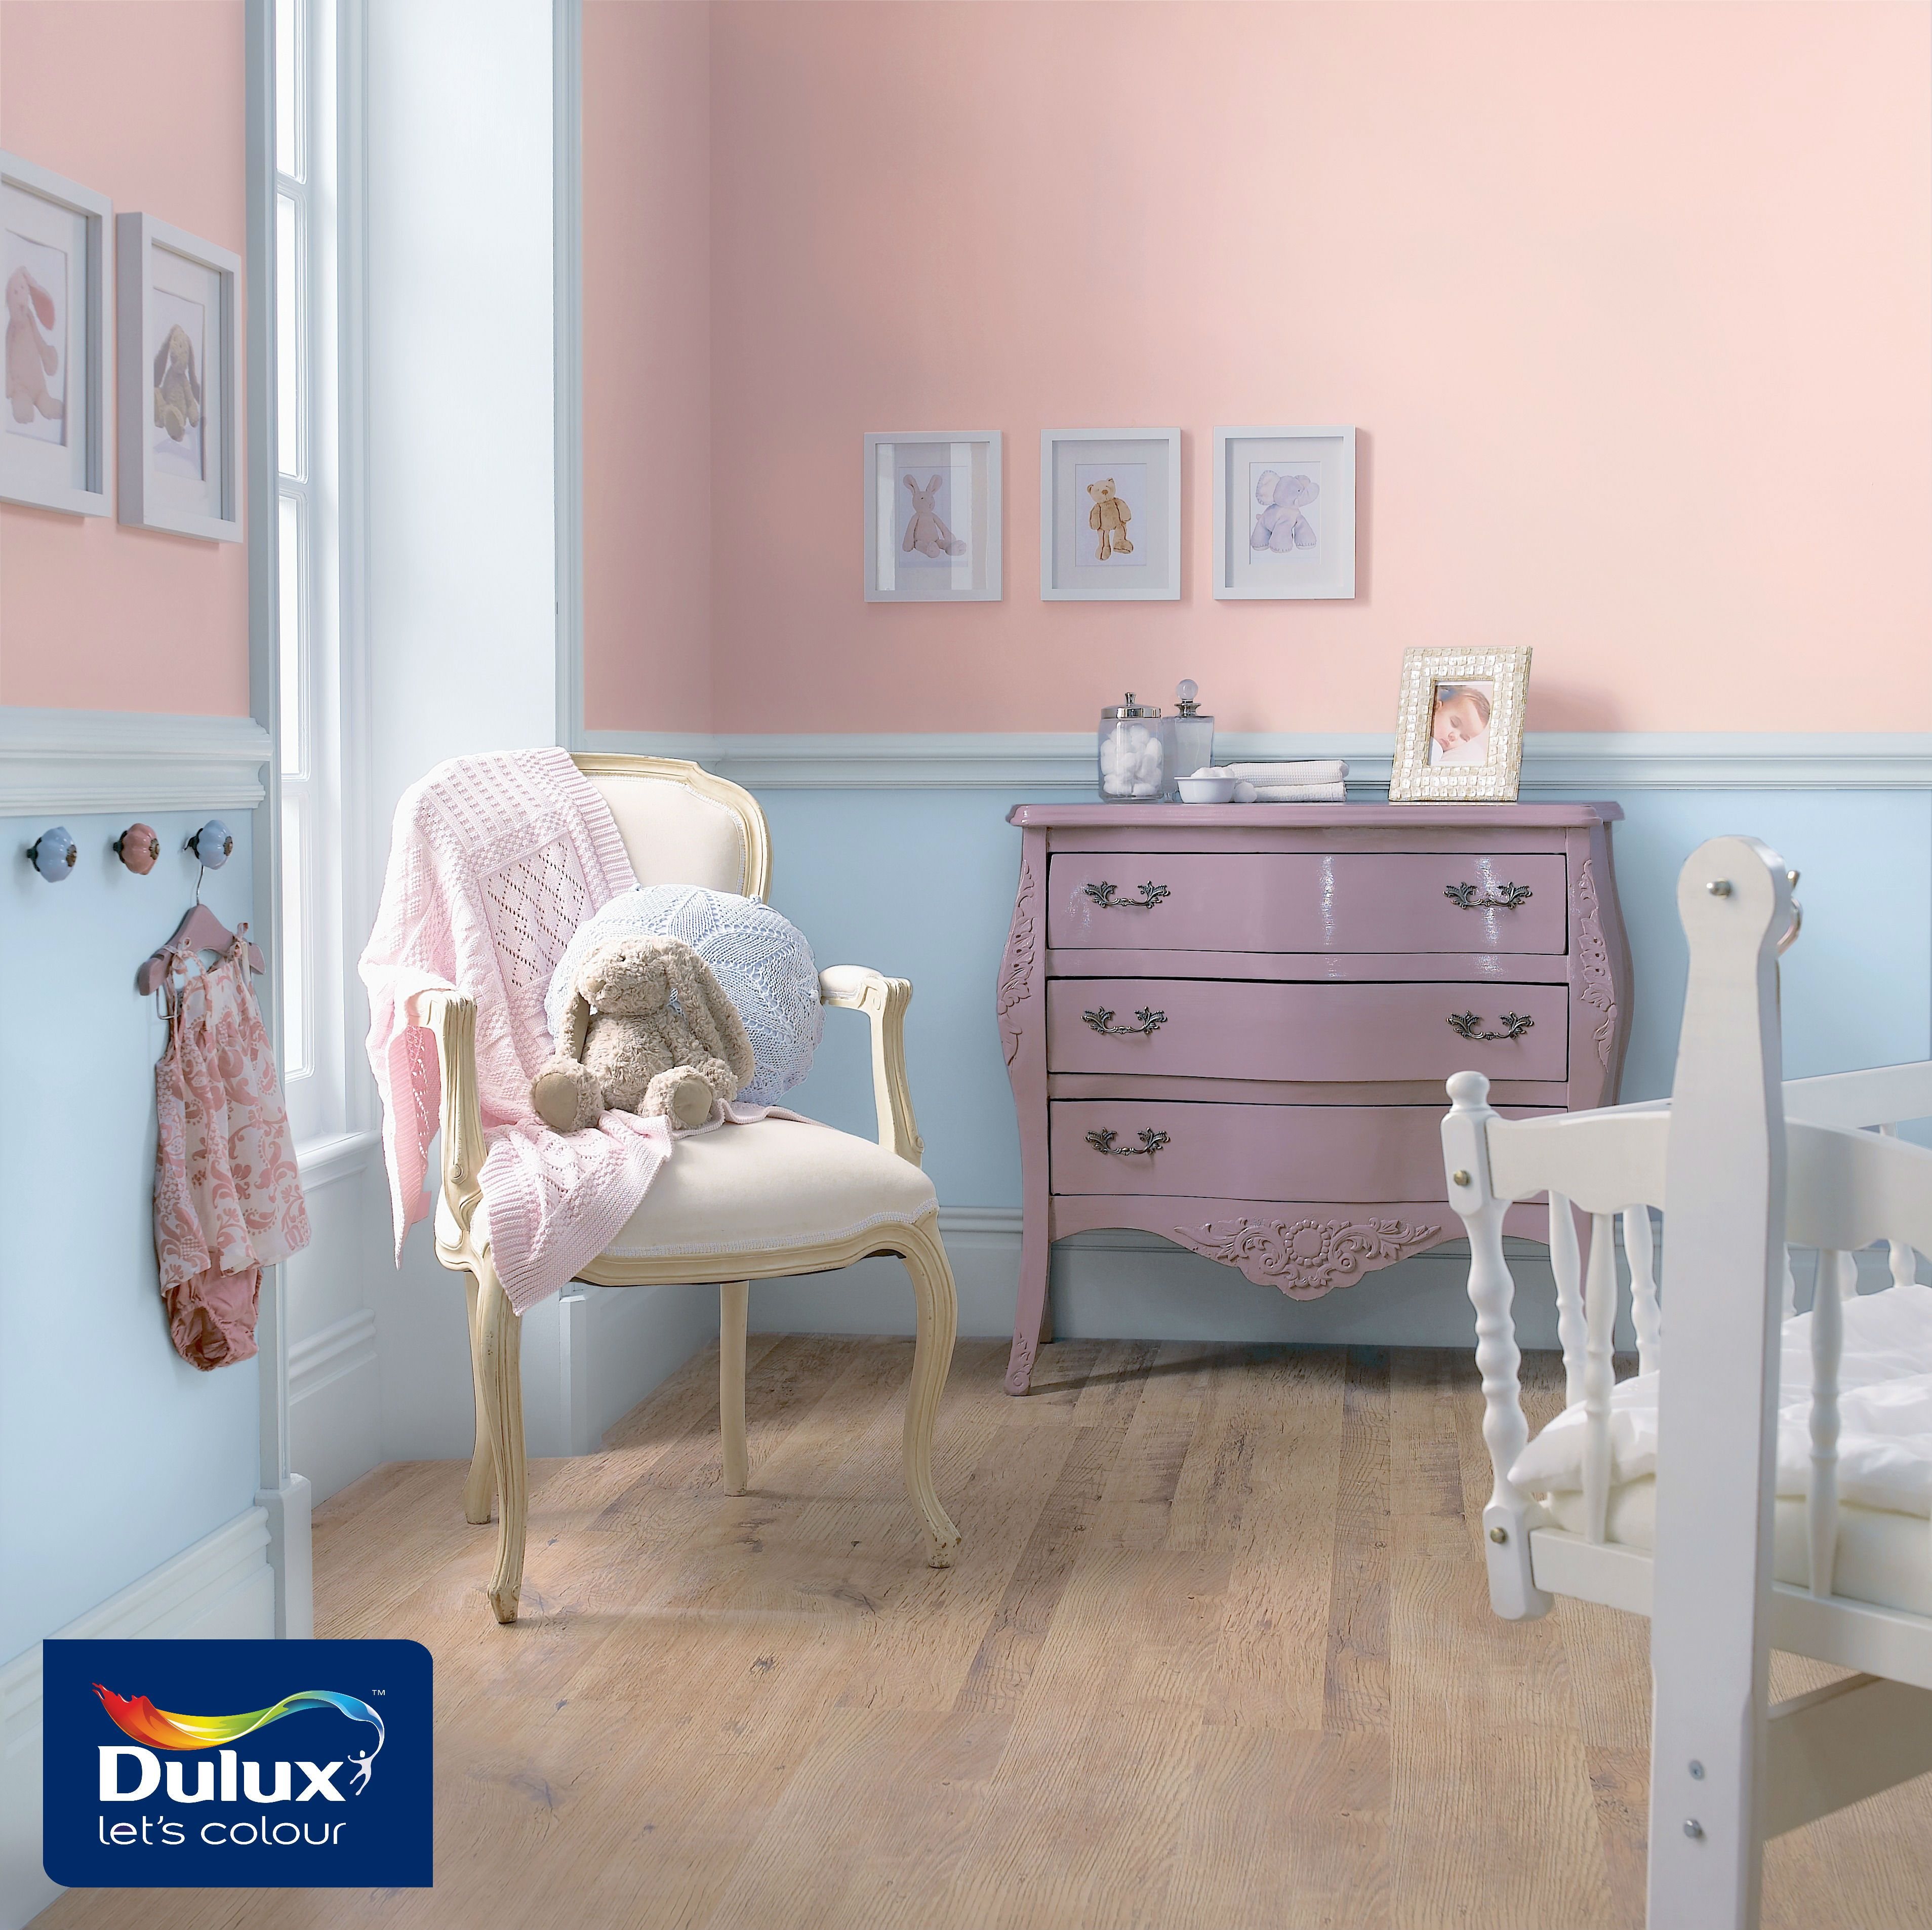 Dulux Zestaw Bedroom In A Box: For A Pastel Coloured Bedroom For Your Little One, Try Out